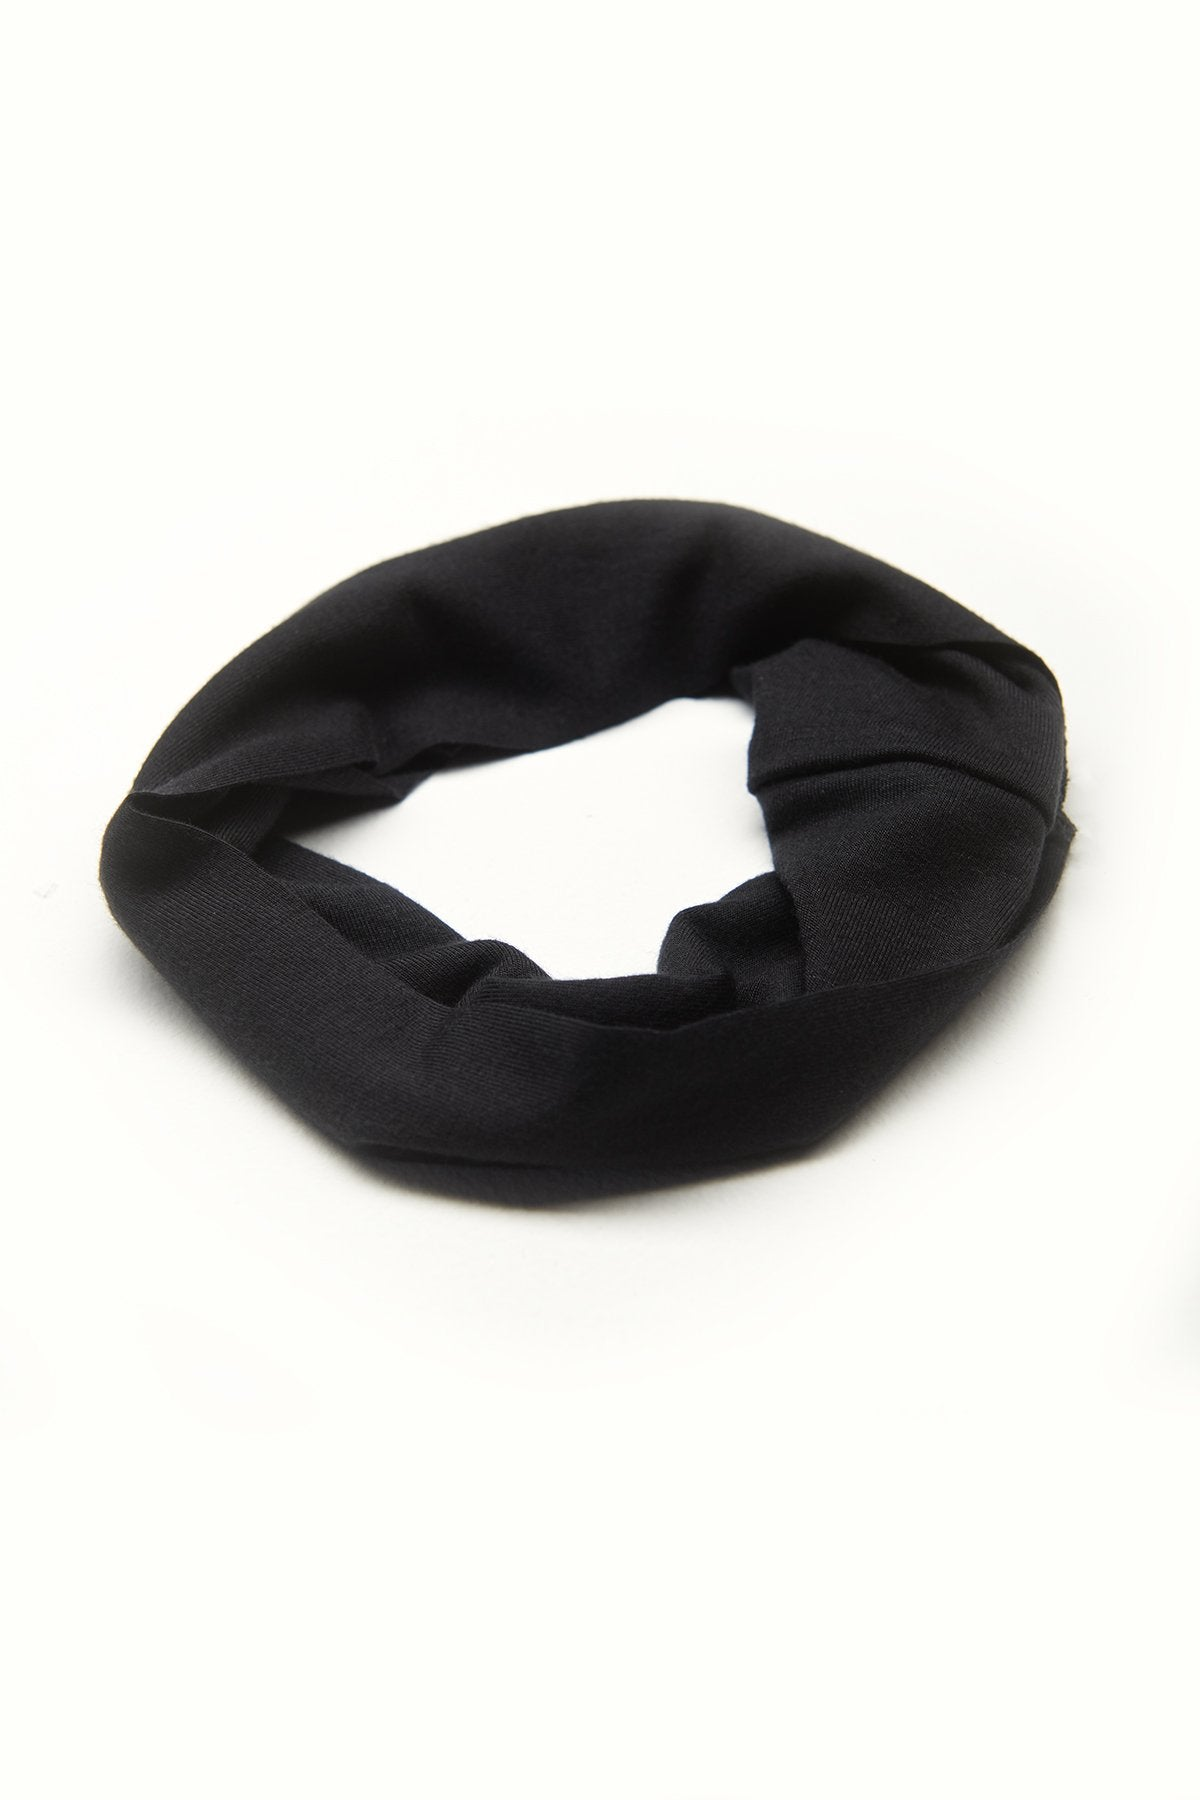 Multi-Use Headbands/Face Masks - Monochrome